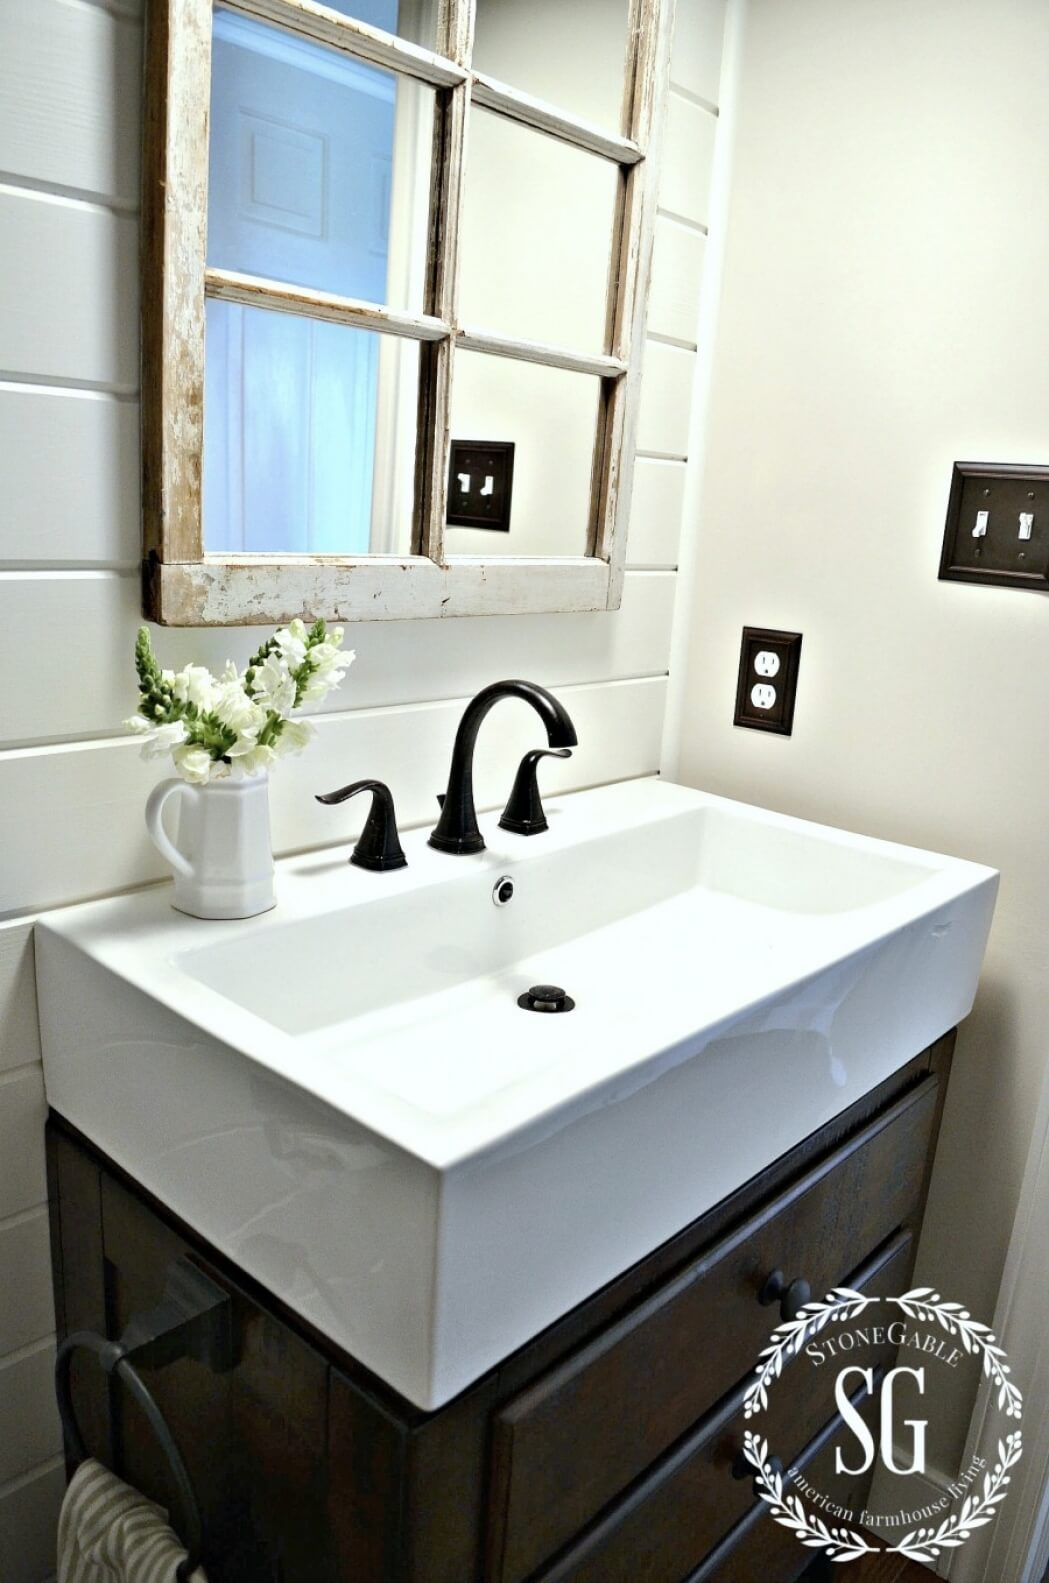 Large Sink with Bright White Decor